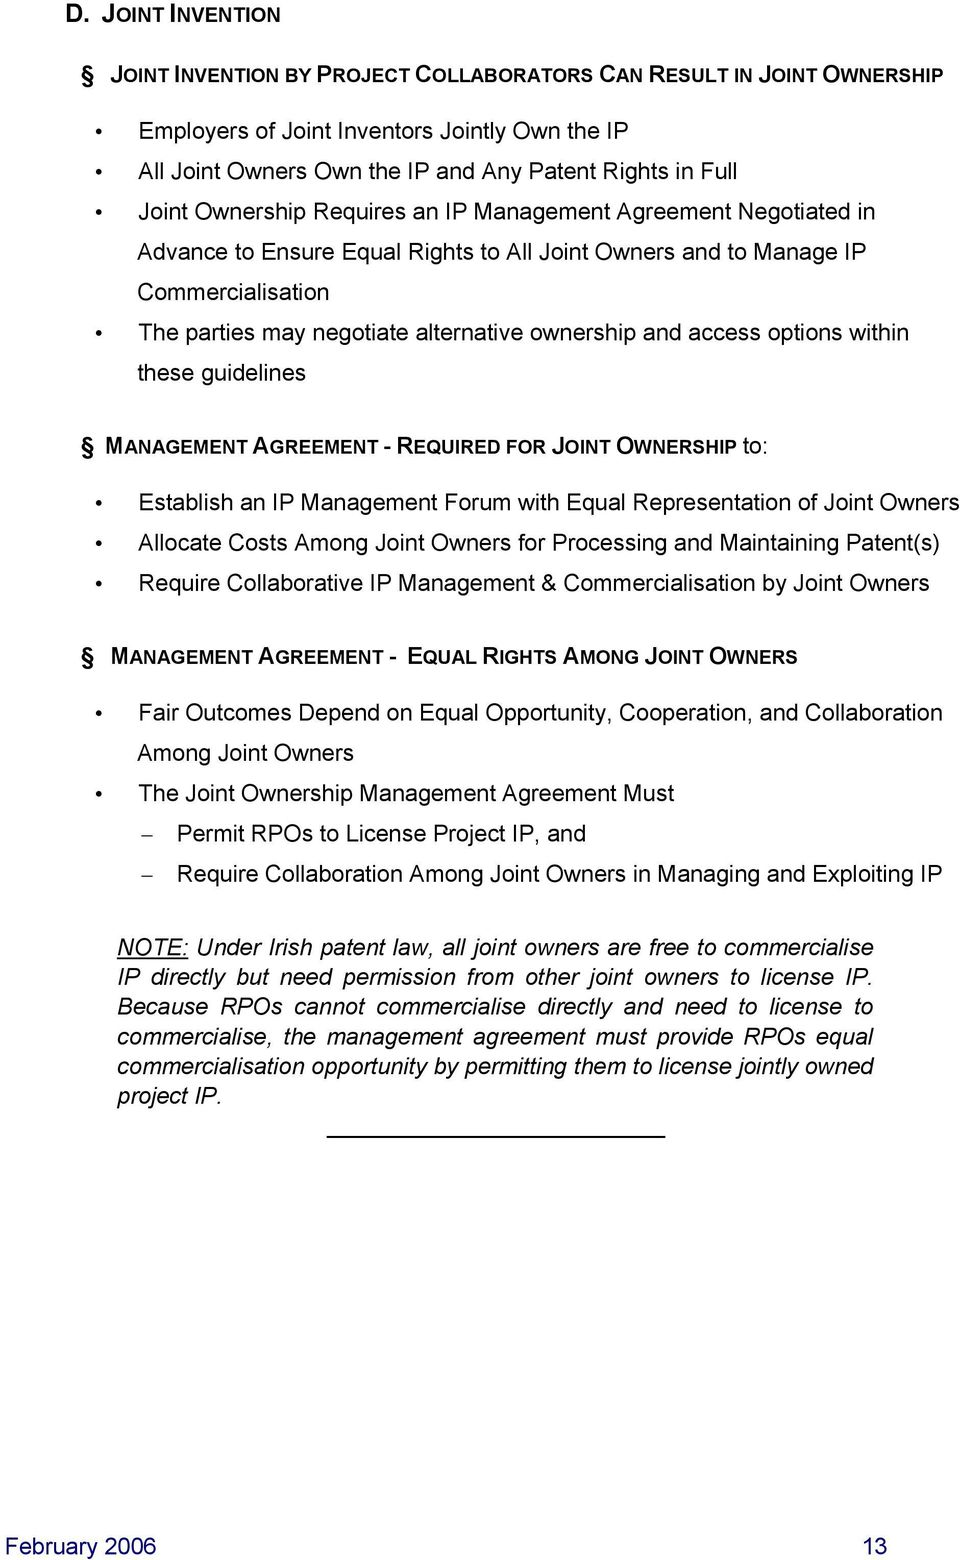 and access options within these guidelines MANAGEMENT AGREEMENT -REQUIRED FOR JOINT OWNERSHIP to: Establish an IP Management Forum with Equal Representation of Joint Owners Allocate Costs Among Joint